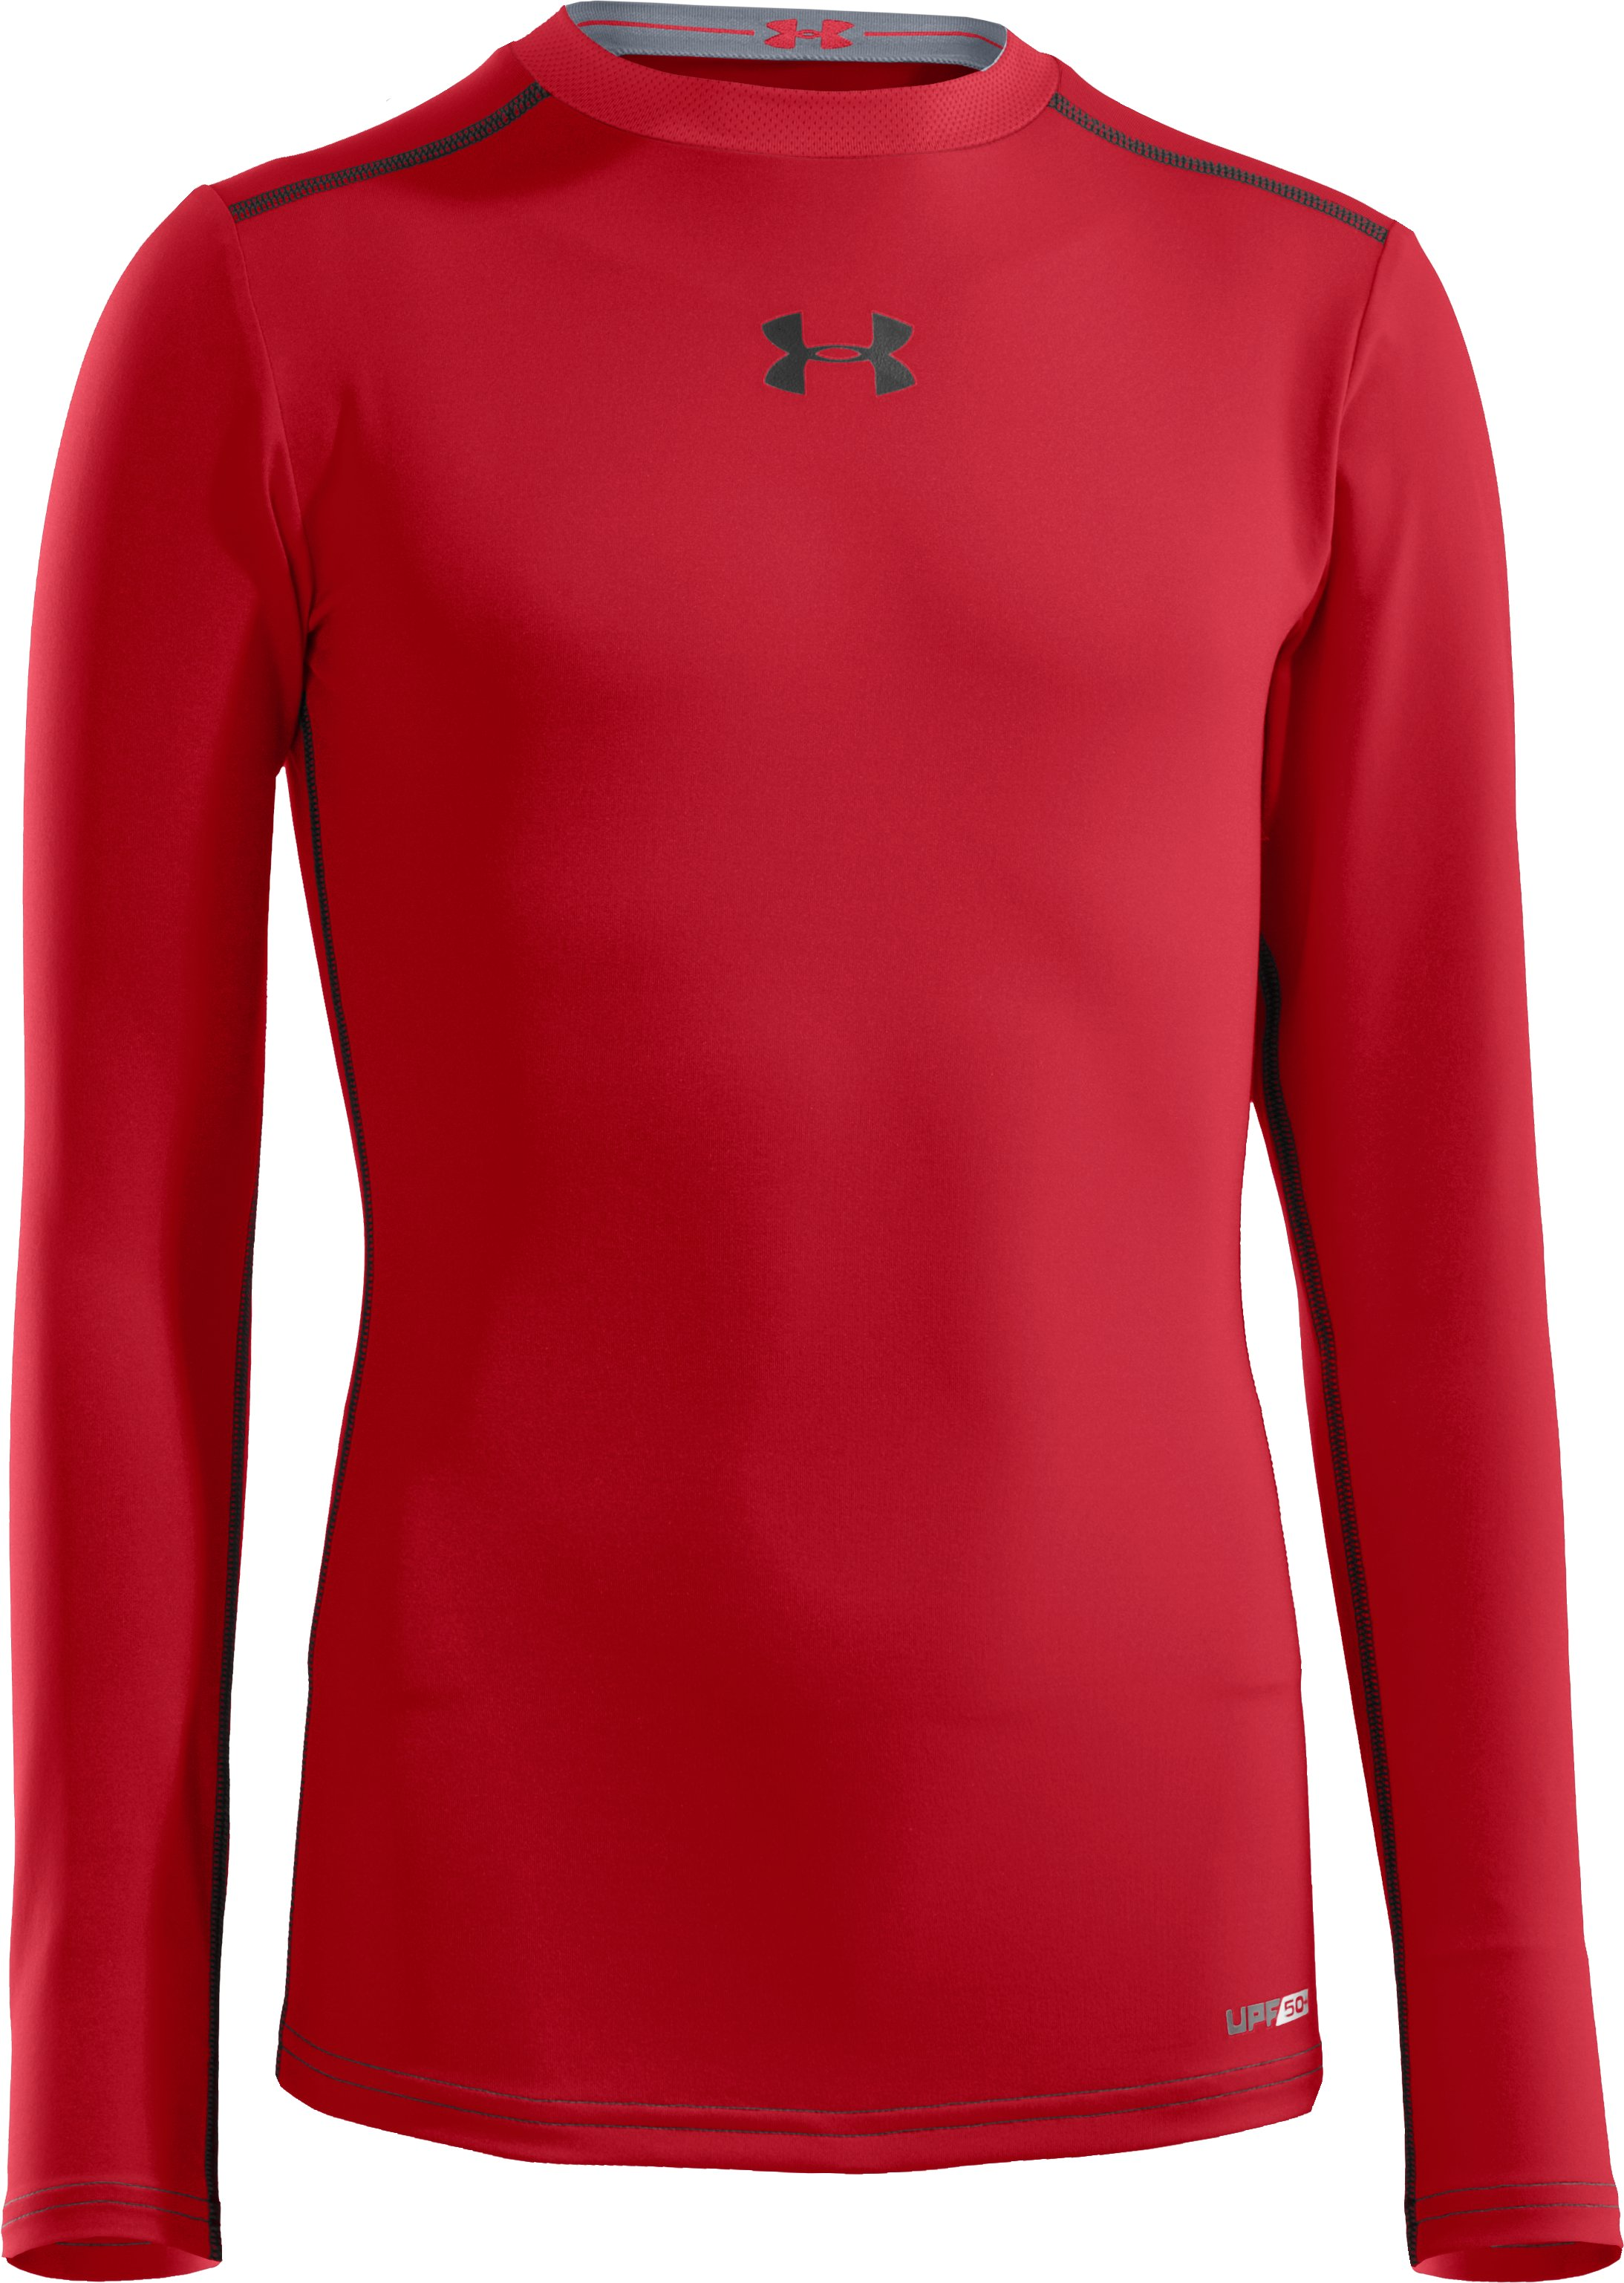 Boys' HeatGear® Sonic Fitted Long Sleeve, Red, zoomed image